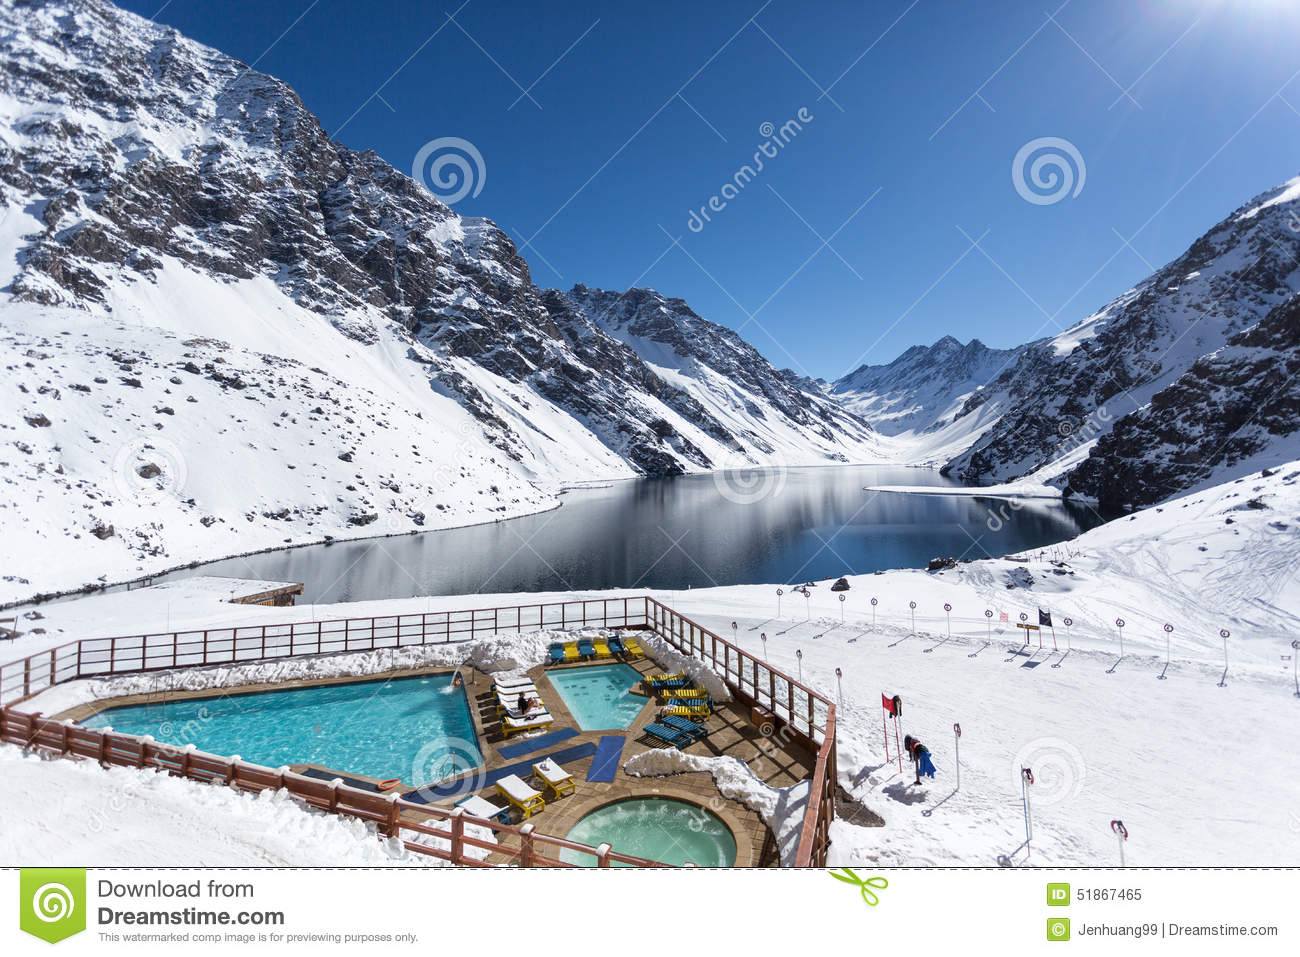 Portillo, Ski Resort, Los Andes of Chile, South America